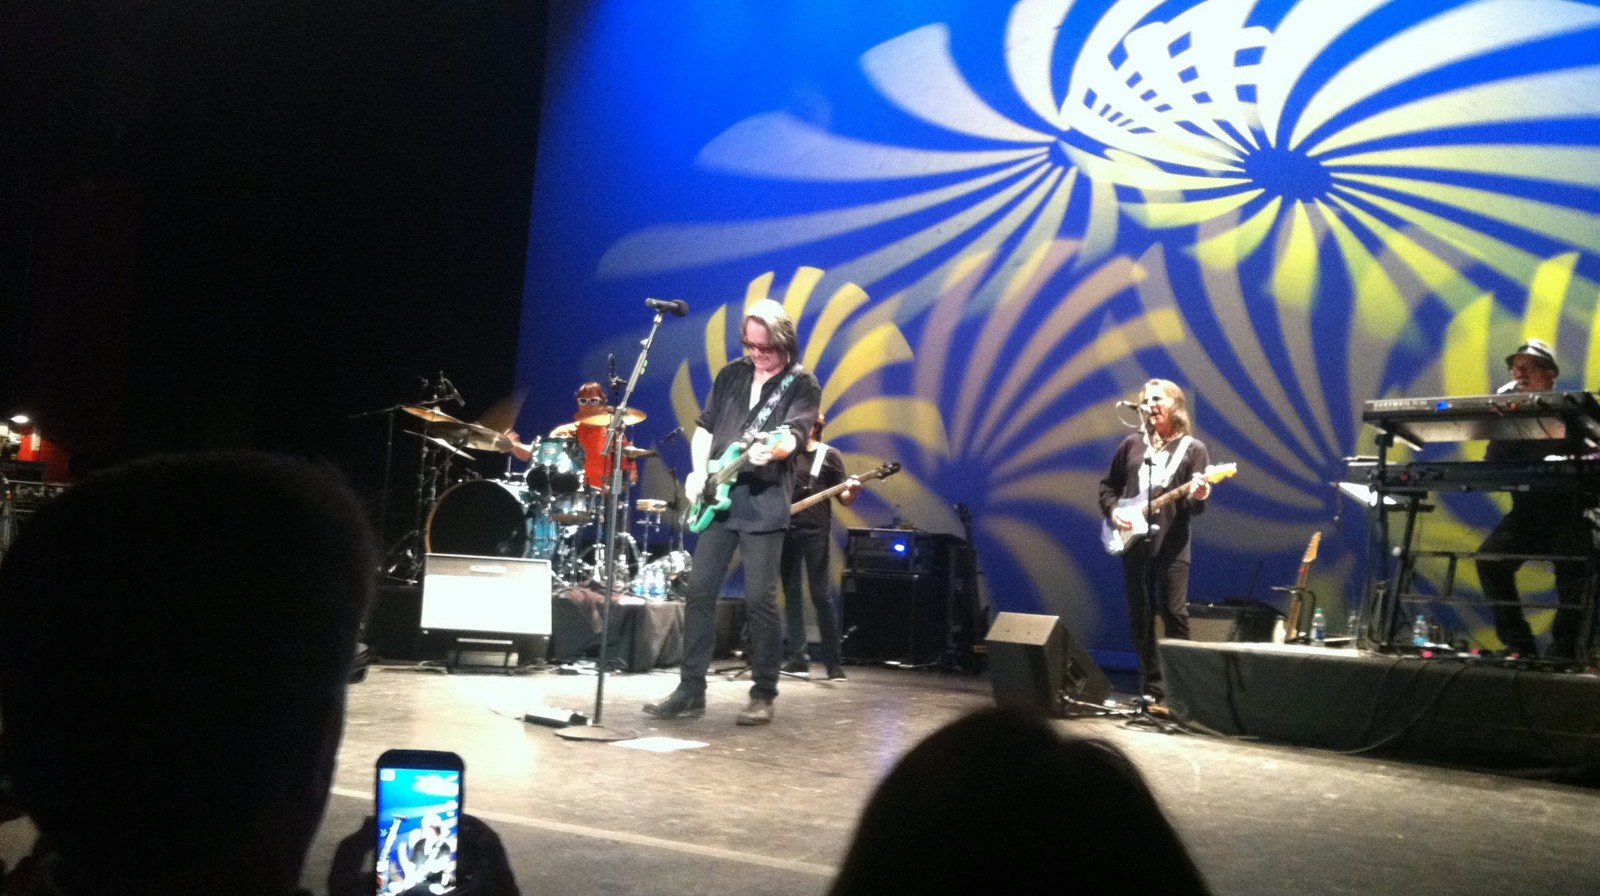 Todd Rundgren and his band played before a full house at the Riviera Theatre on Sunday.